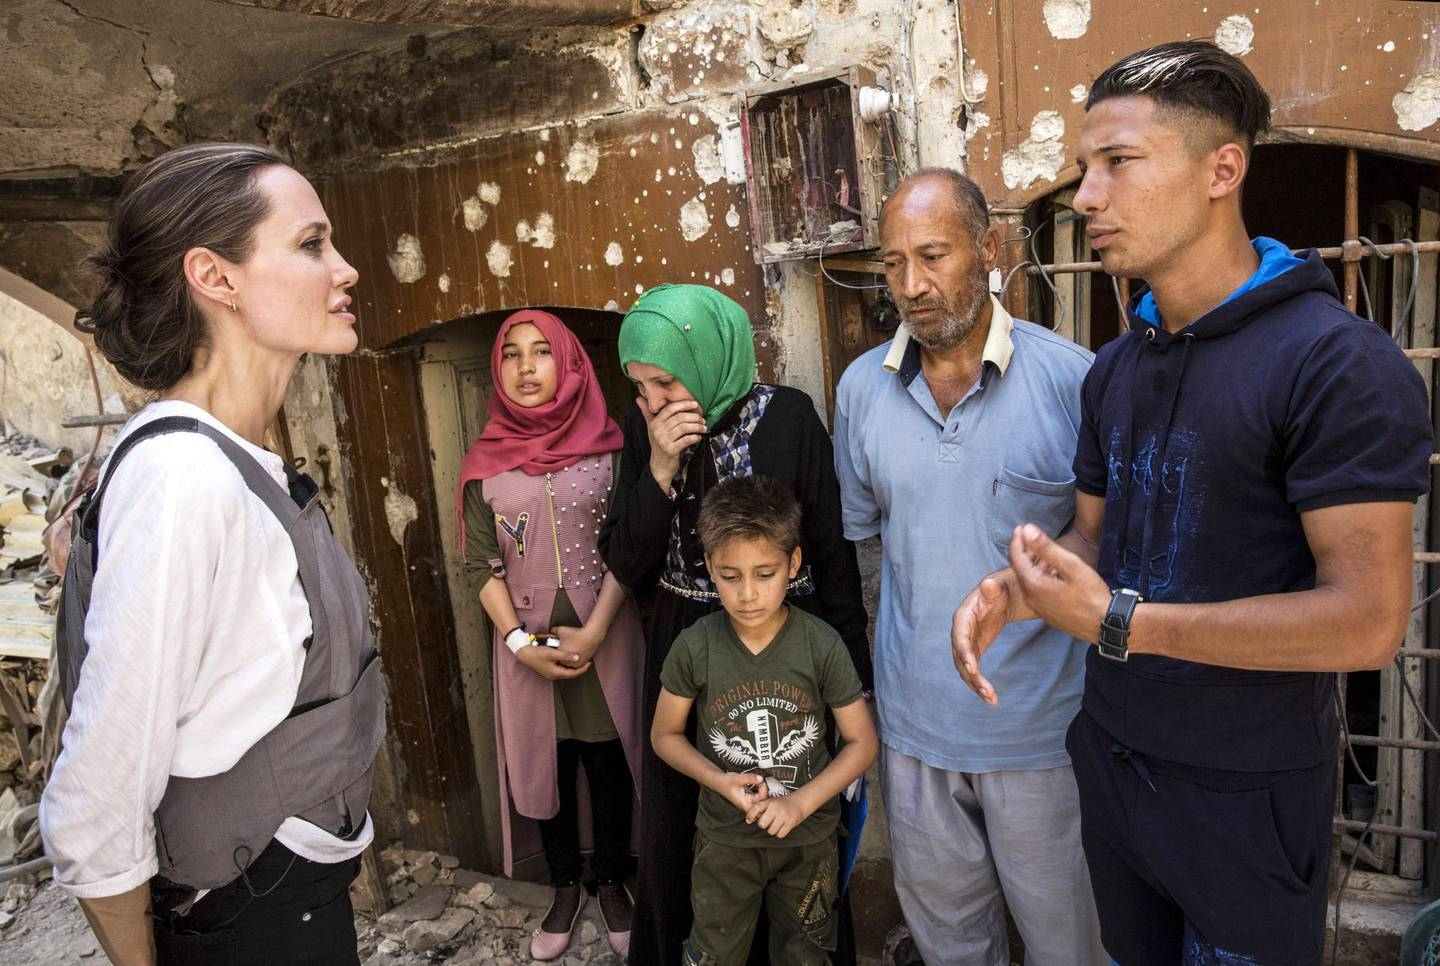 epa06812948 A handout photo made available by the United Nations High Commissioner for Refugees (UNHCR) shows UNHCR Special Envoy Angelina Jolie (L) meets with Mohamed and his family during a visit to the Old City in West Mosul, Iraq, 16 June 2018. During the offensive to retake the city from ISIS Mohamed's house was hit by an airstrike killing his 17 year-old daughter and destroying most of the home. Together with his three surviving children and his wife, Mohamed fled to the home of a family friend, where they have been living ever since. However the host family can no longer support them and Mohamed may have to bring his family back to live in the ruins of their home.  EPA/Andrew McConnell / HANDOUT  HANDOUT EDITORIAL USE ONLY/NO SALES